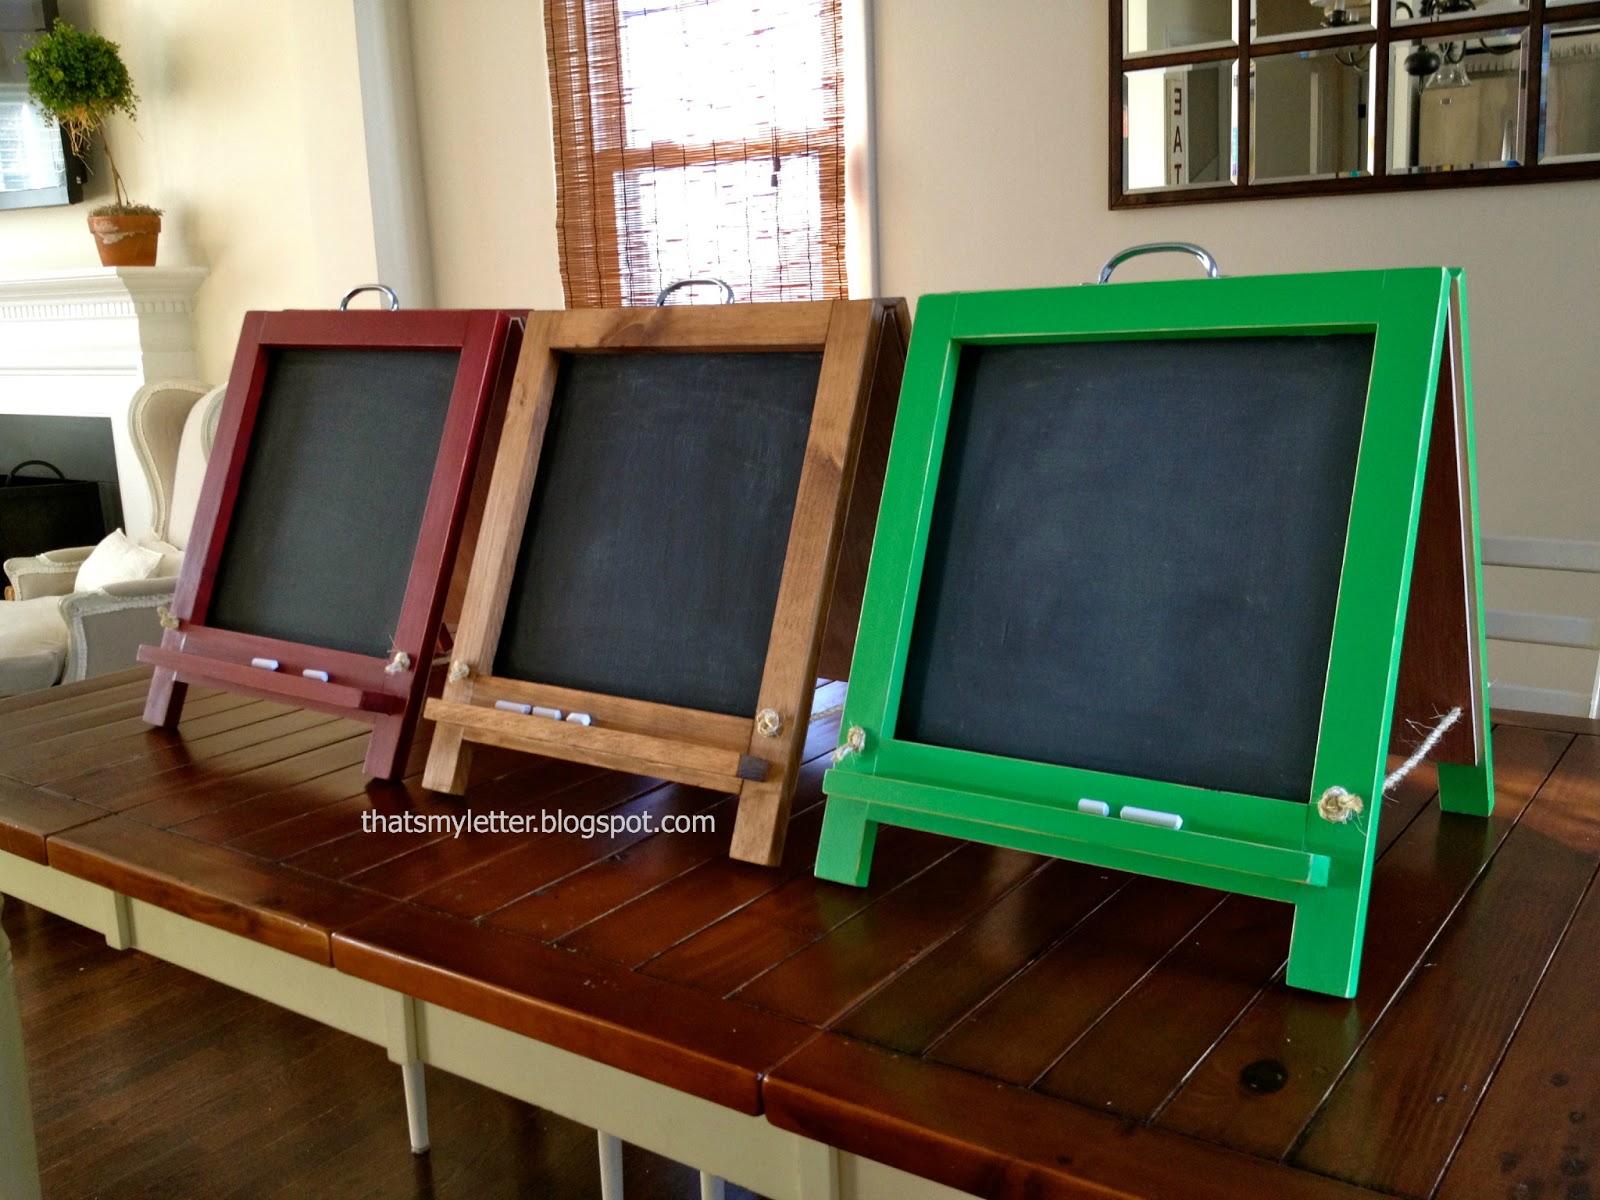 Hereu0027s How To Build The Tabletop Chalkboard Easel: